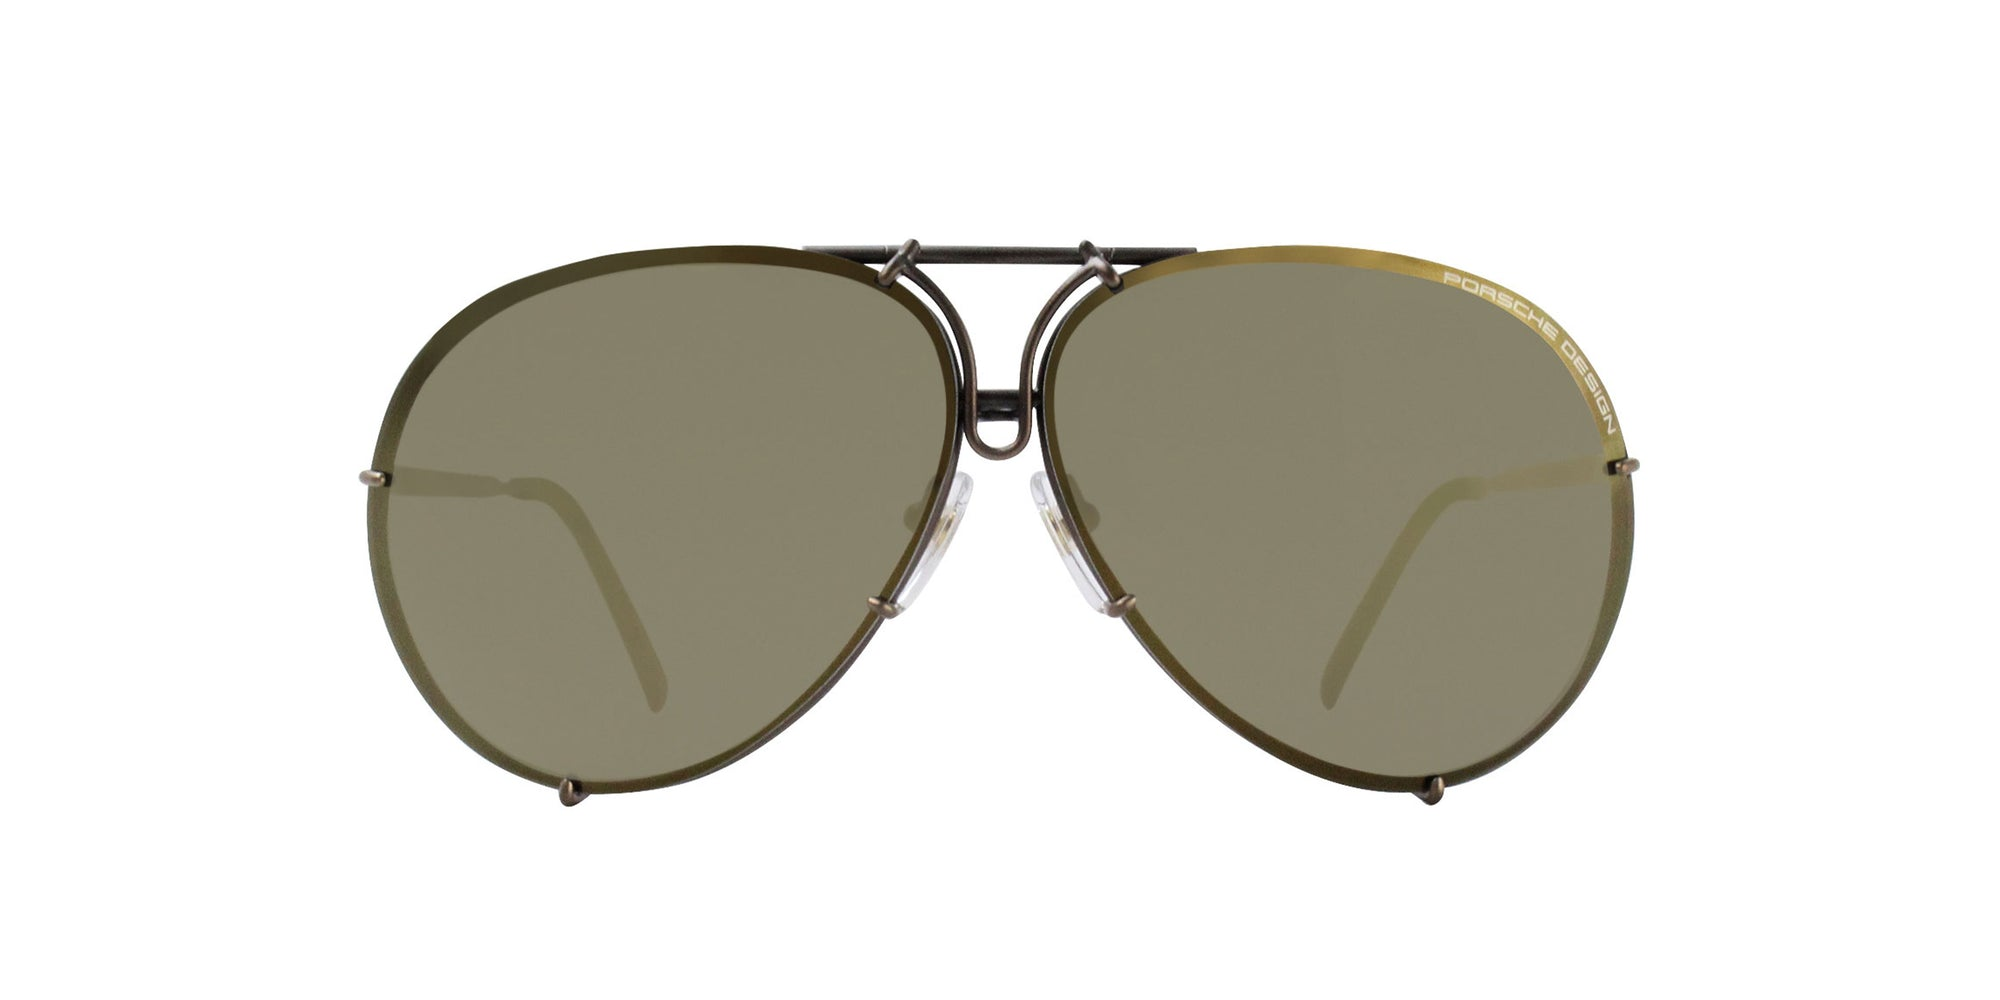 Porsche Design - P8478 Bronze Aviator Men Sunglasses - 69mm-Sunglasses-Designer Eyes